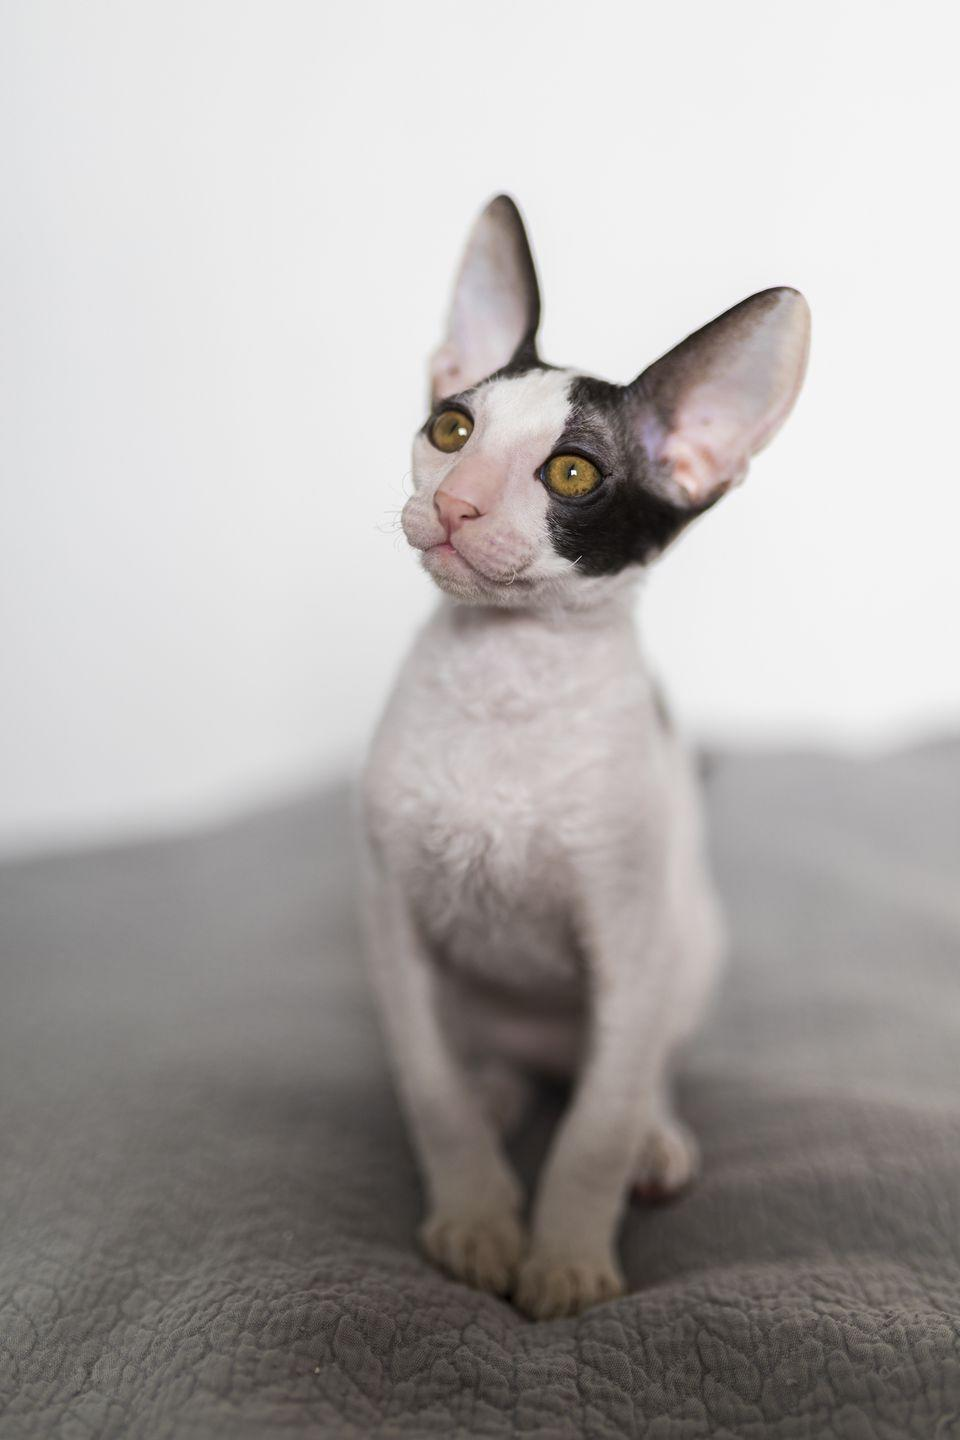 "<p>Don't worry about arriving at work covered in cat hair because, according to The Cat Fancier's Association (CFA), the <a href=""http://cfa.org/breeds/breedscj/cornishrex.aspx"" rel=""nofollow noopener"" target=""_blank"" data-ylk=""slk:Cornish Rex has minimal shedding"" class=""link rapid-noclick-resp"">Cornish Rex has minimal shedding</a>. </p>"